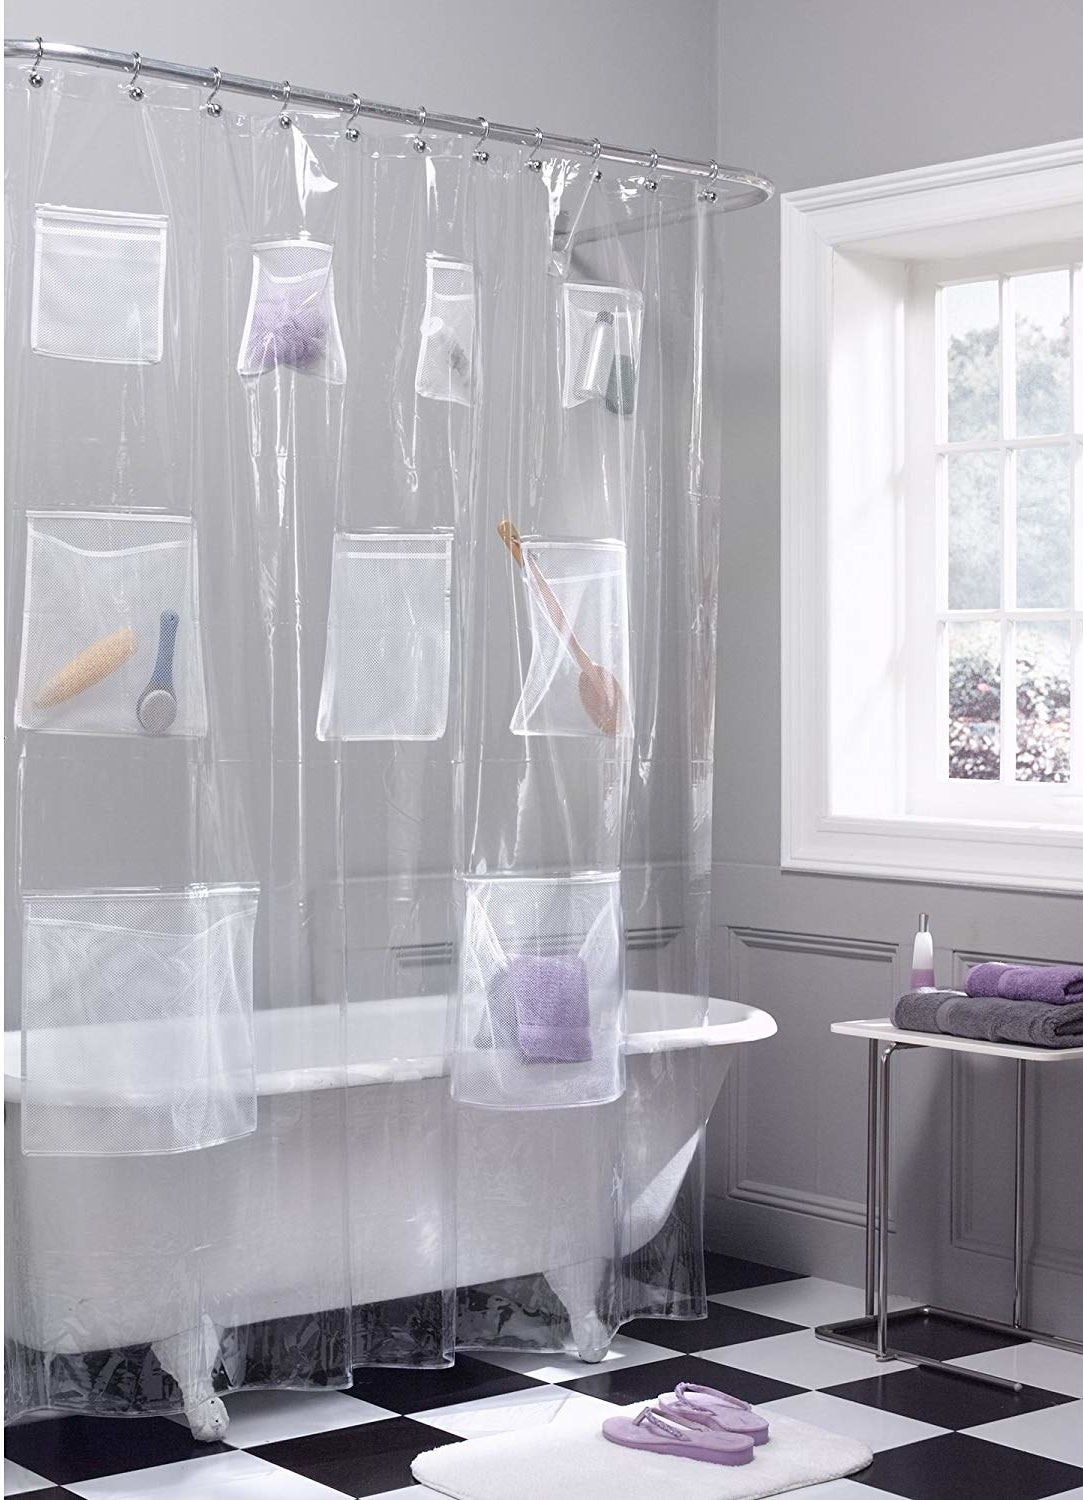 The clear plastic curtain, with two big pockets at the bottom, three medium ones in the middle, and four smaller ones near the top